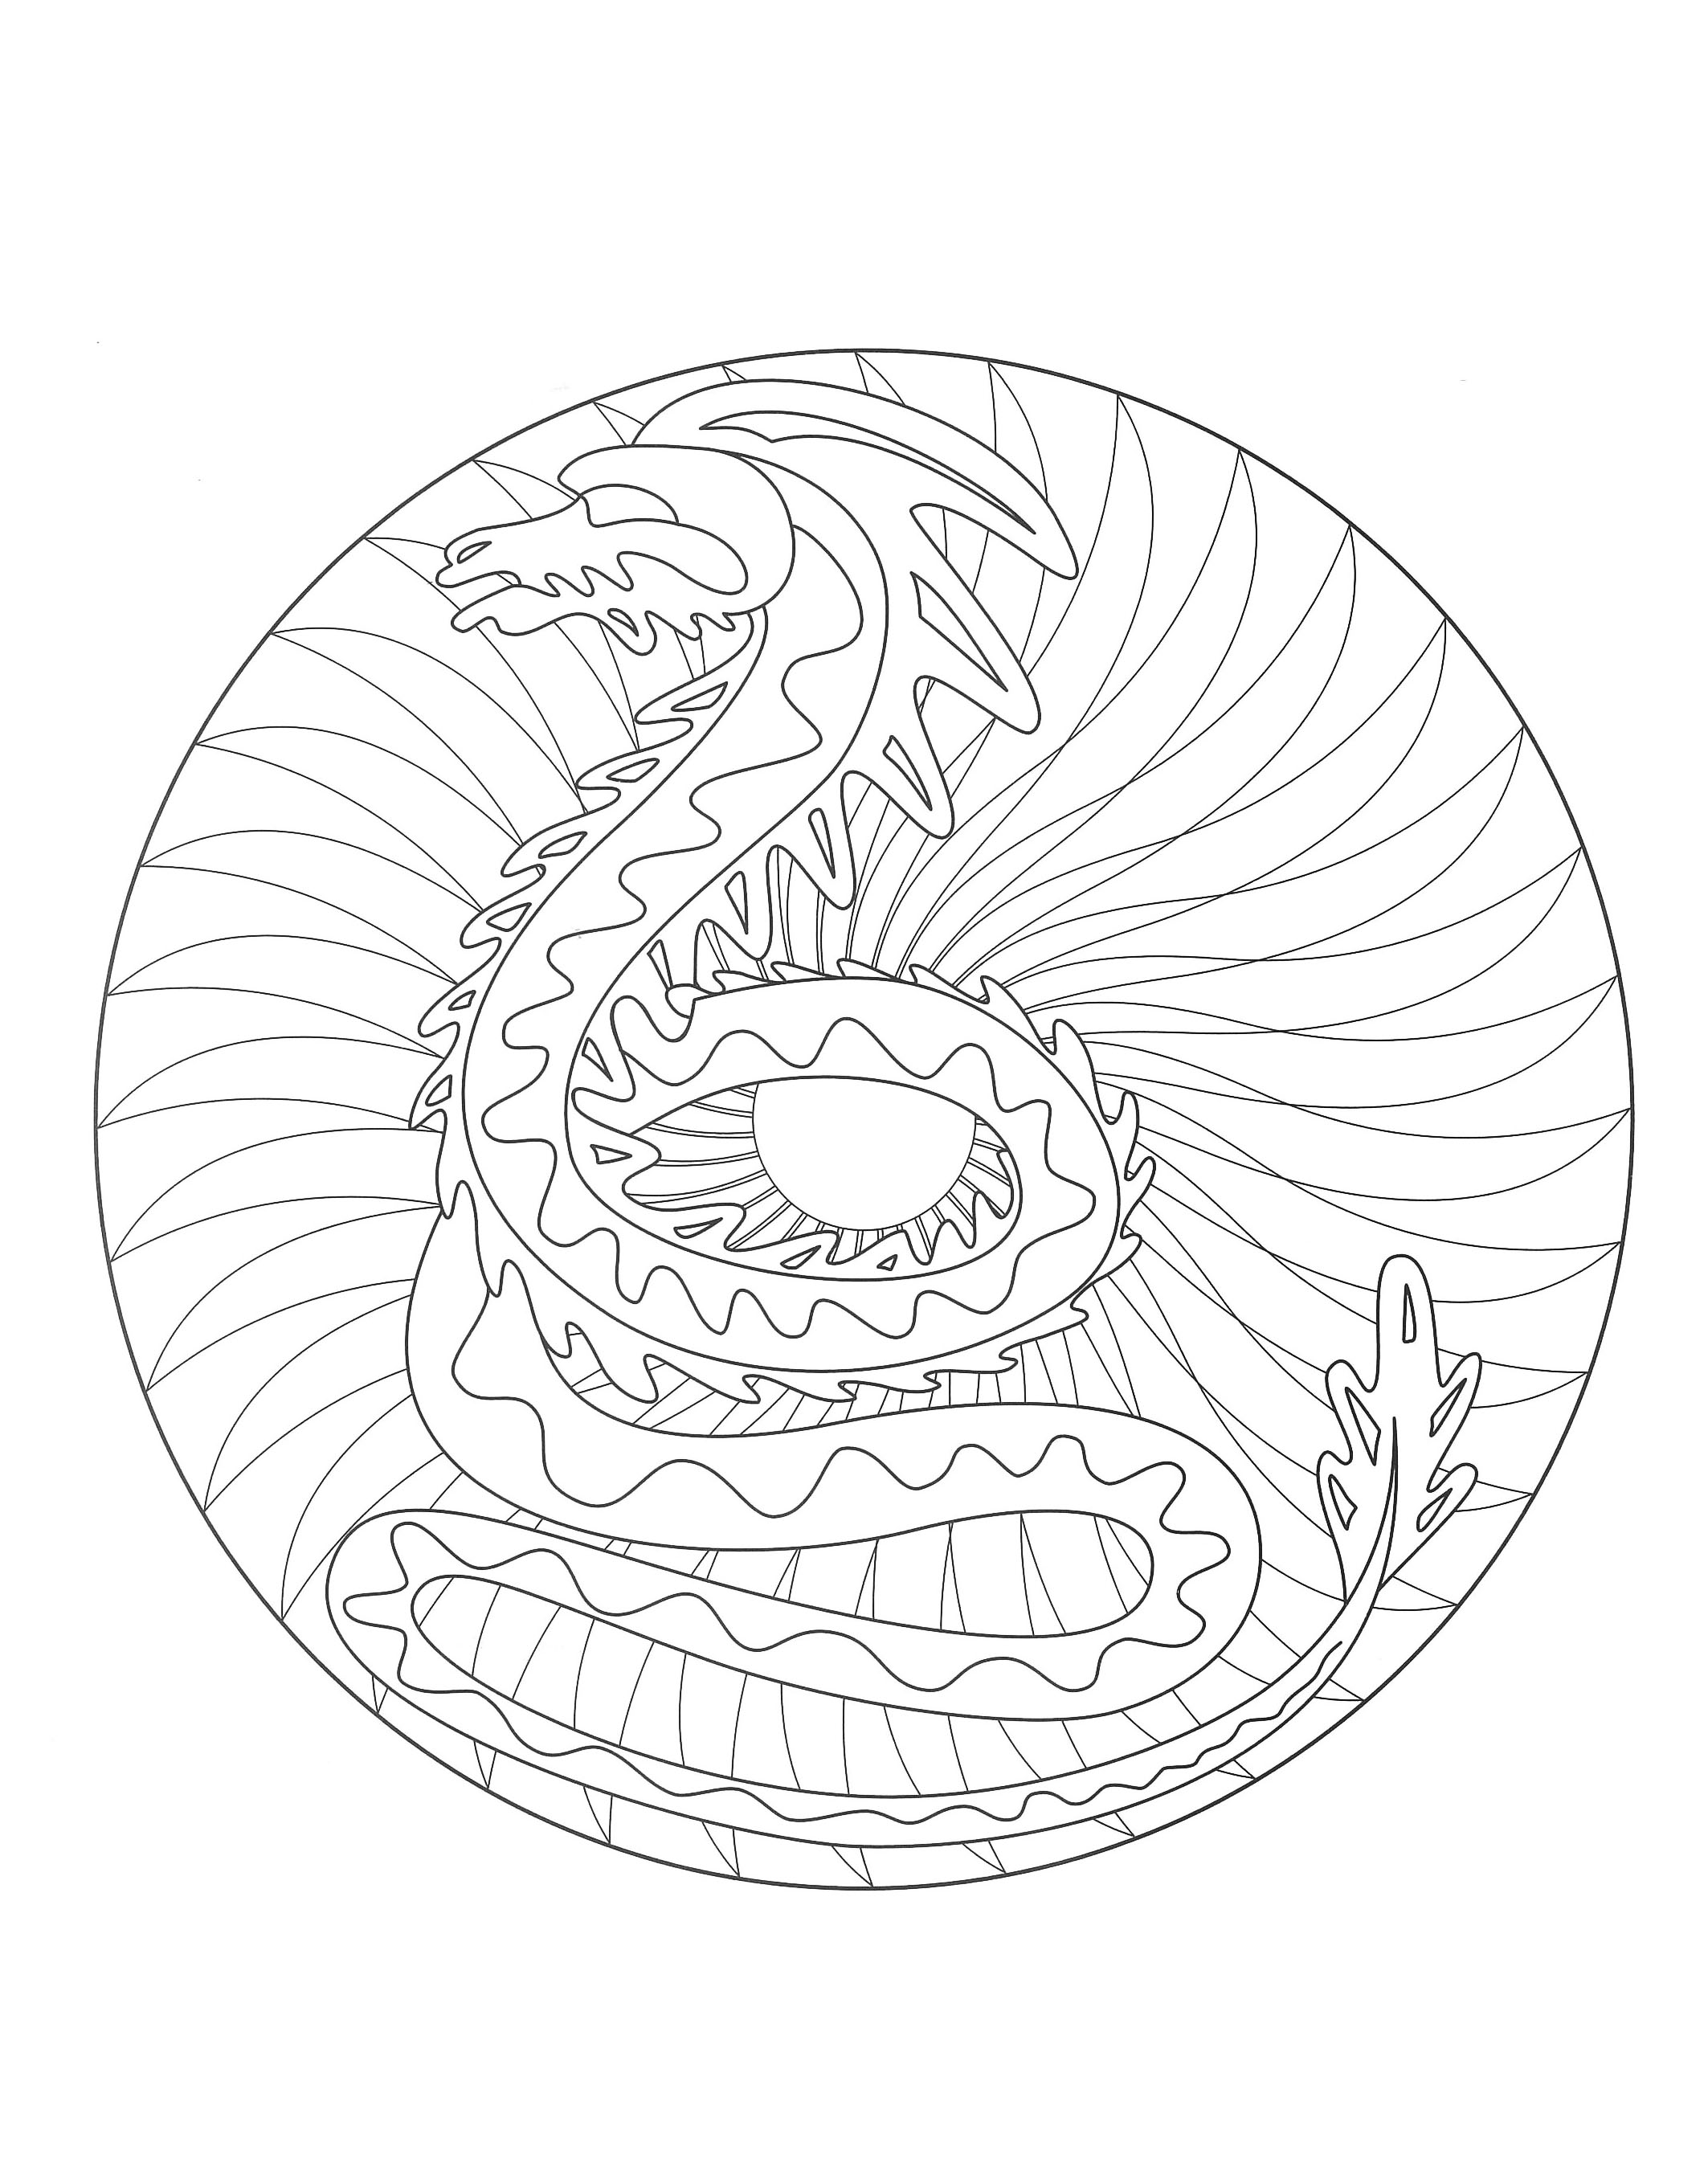 Mandala with a dragon 2